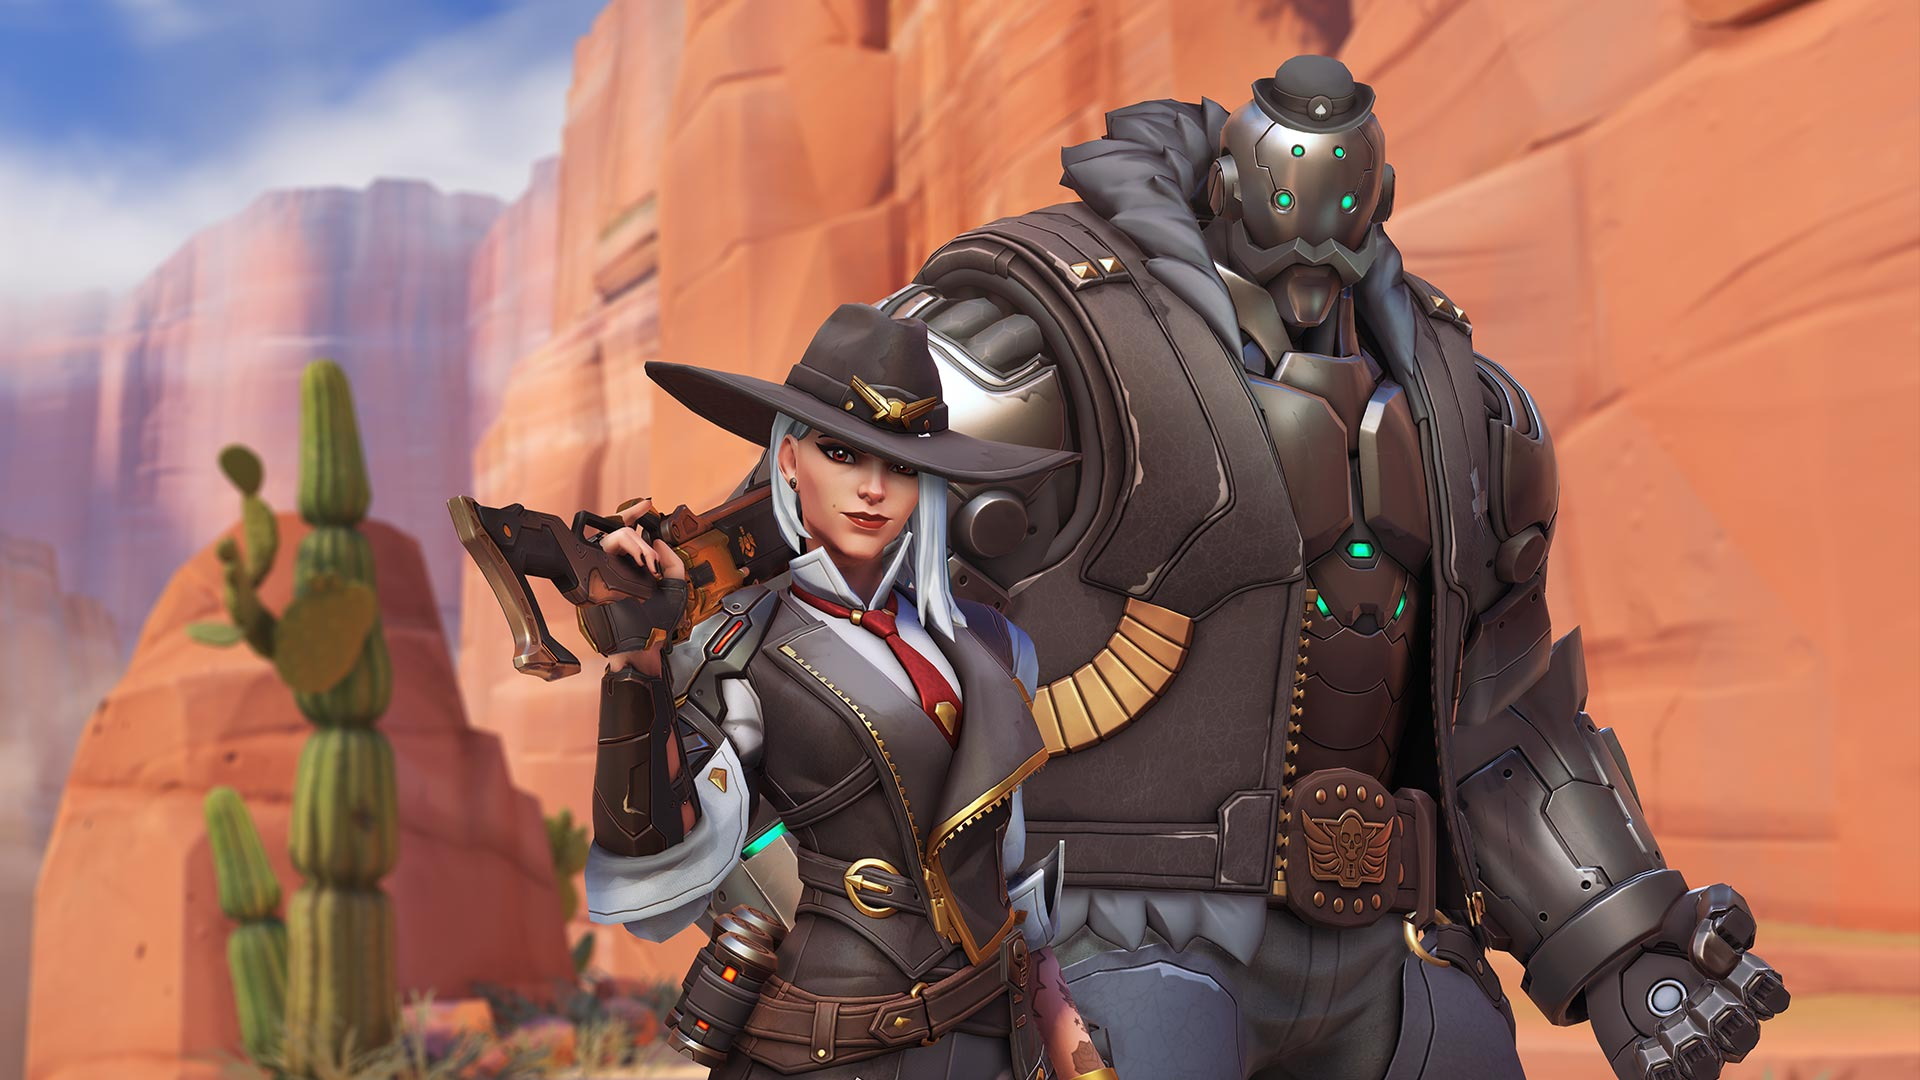 New Overwatch Hero Ashe Announced At BlizzCon